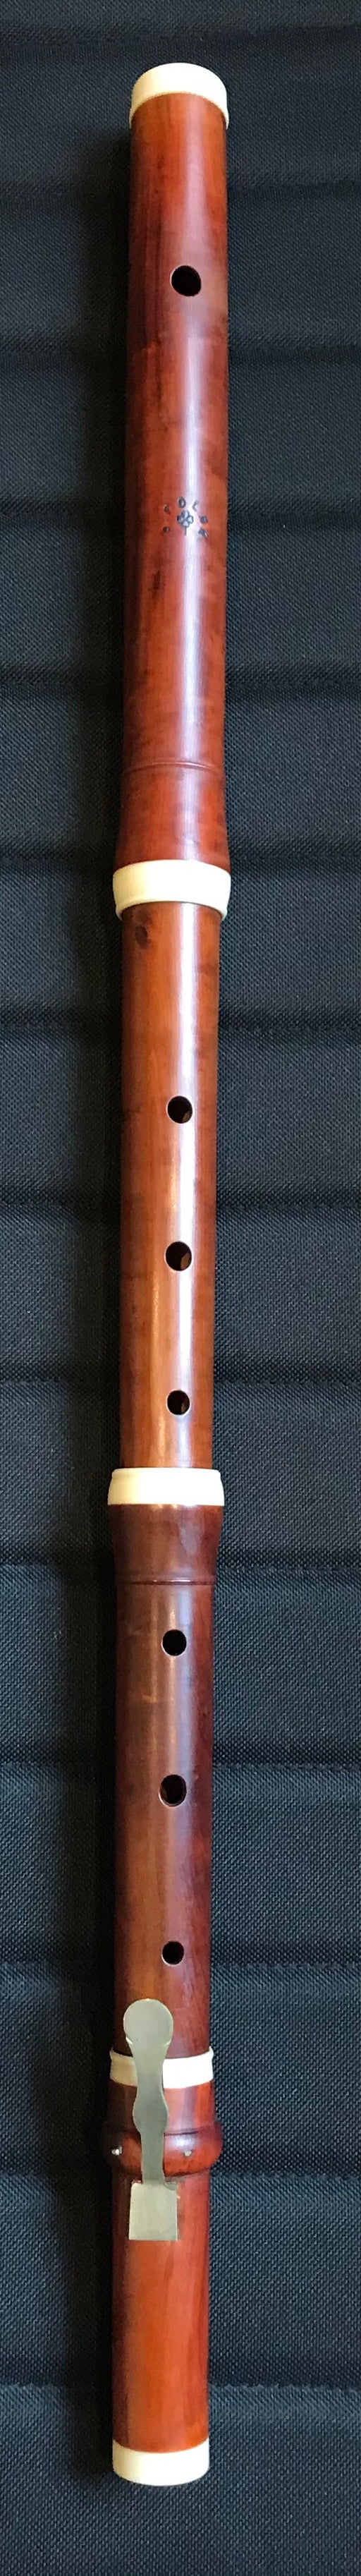 1154L Polak Flute after Wijne in stained boxwood a=415